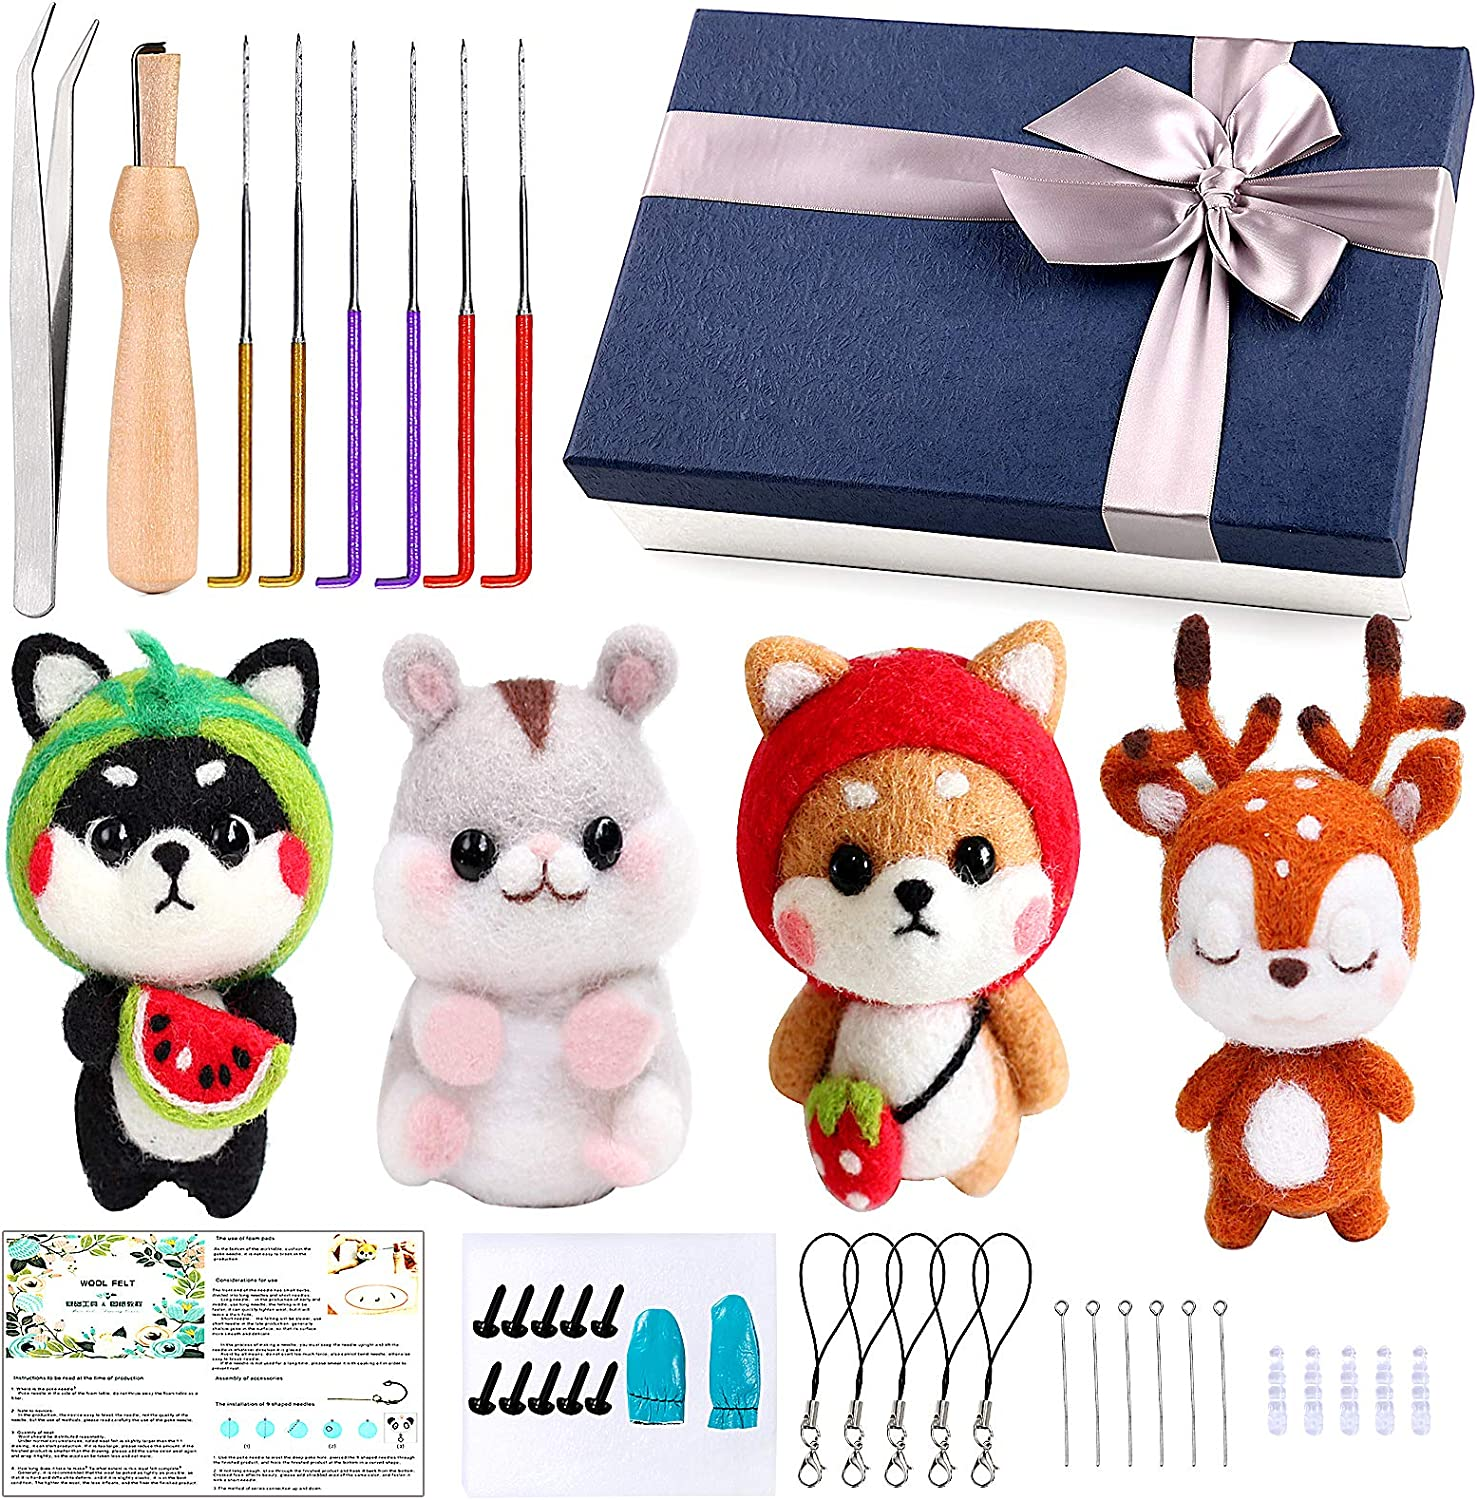 Home Decorations DIY Needle Felting Kit for Beginners Adults,Wool Roving with Complete Felt Tools Needle Felting Starter Kit for Craft Animal Wool Felting Supplies Gift Children/'s Day Festival